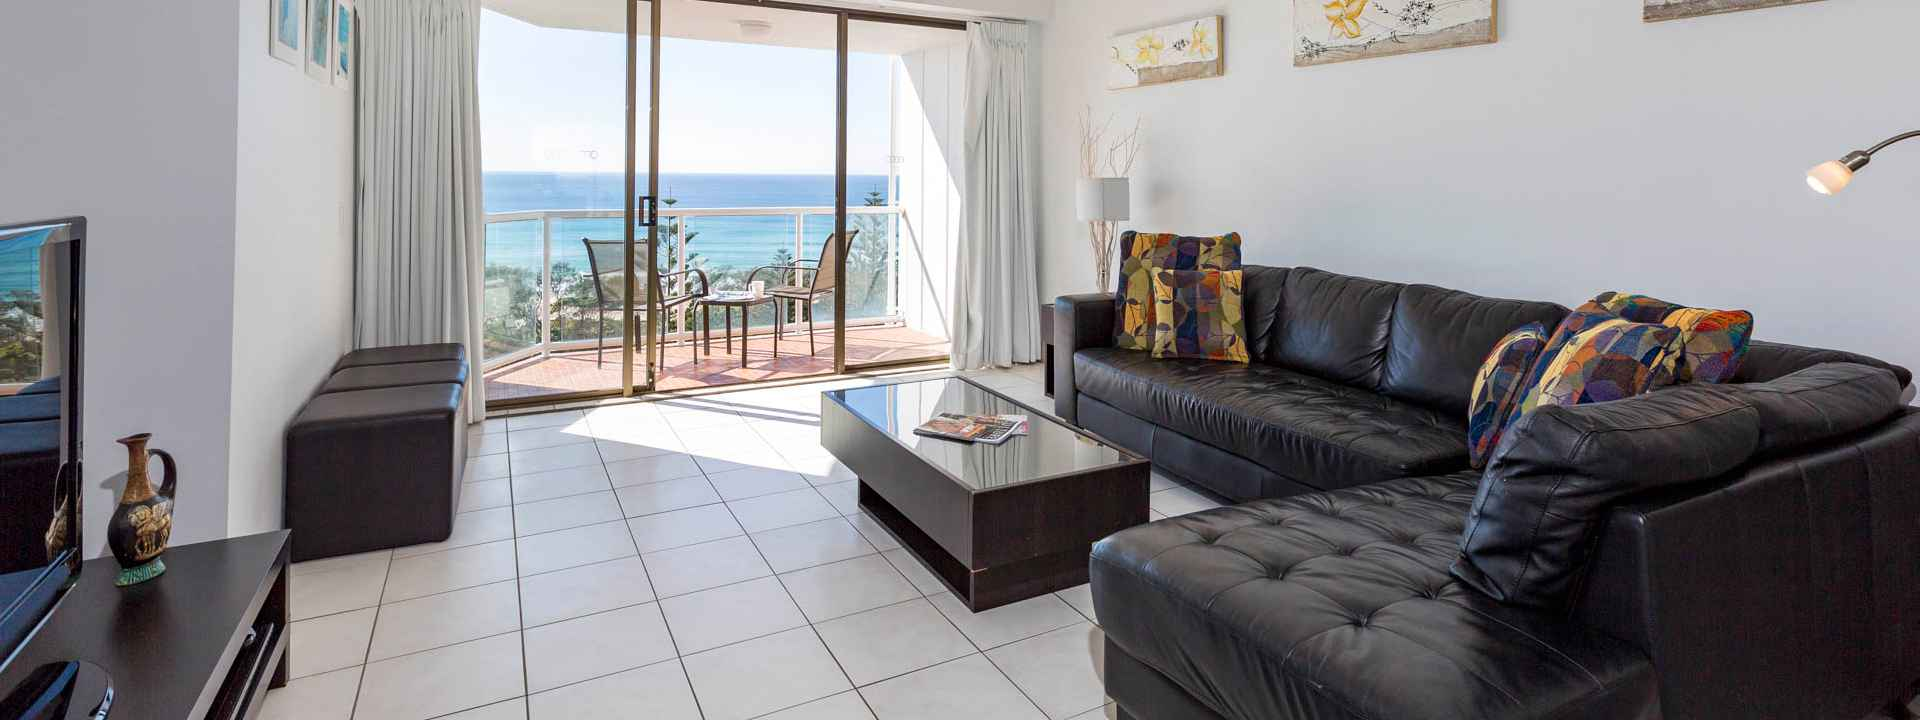 2 bedroom apartments broadbeach gold coast south - 2 bedroom apartments in gold coast ...